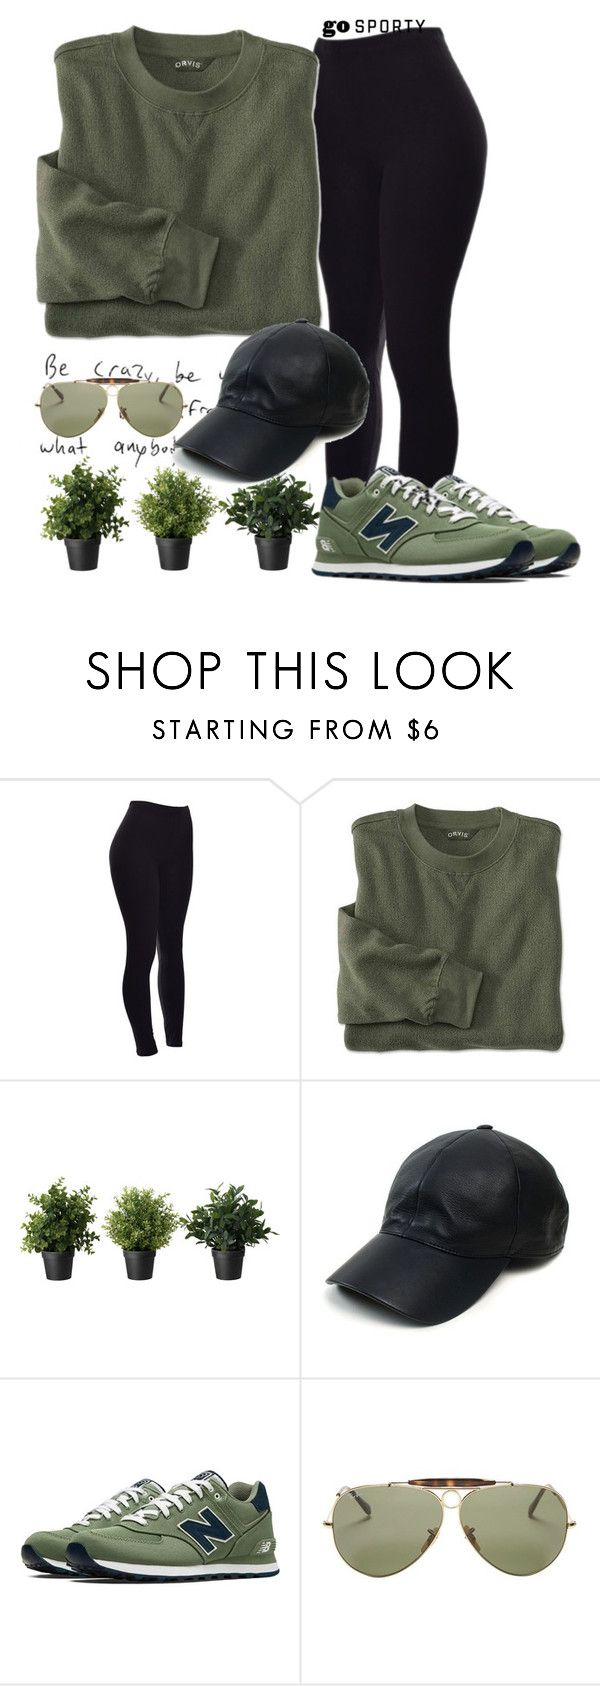 #sportystyle by ana-anny-blagojevic ❤ liked on Polyvore featuring Vianel, New Balance, Ray-Ban and sportystyle